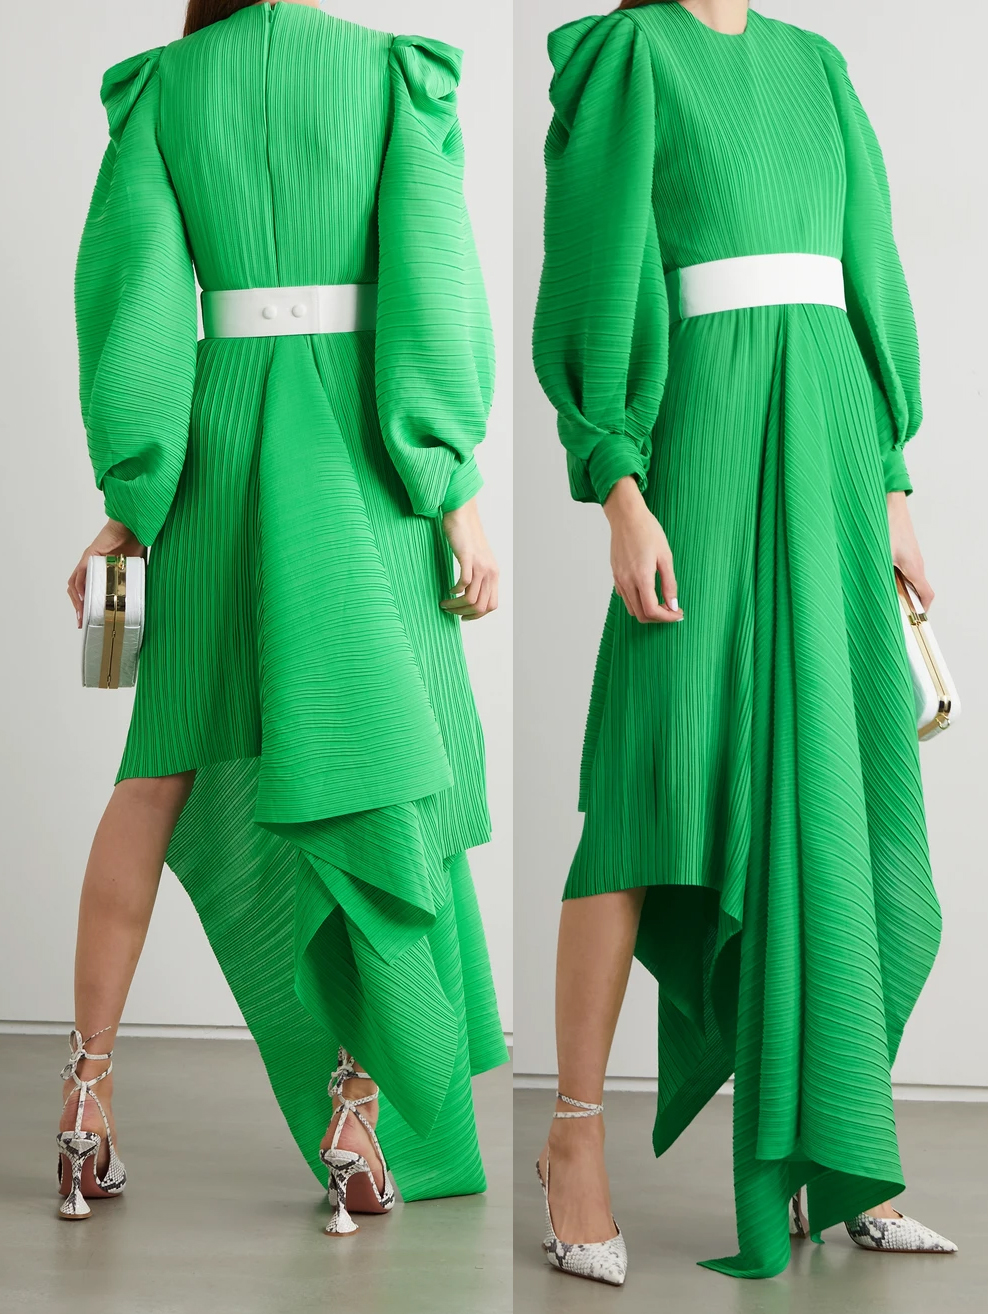 Solace London Green Dress 2021. Emerald Green Dress 2021. Green Dress for Royal Ascot 2021. What to wear for Royal Ascot 2021. What to wear to Royal Ascot Races 2021. Royal Ascot Outfits 2021. Ascot Outfit Ideas 2021. Summer wedding guest outfit ideas 2021.